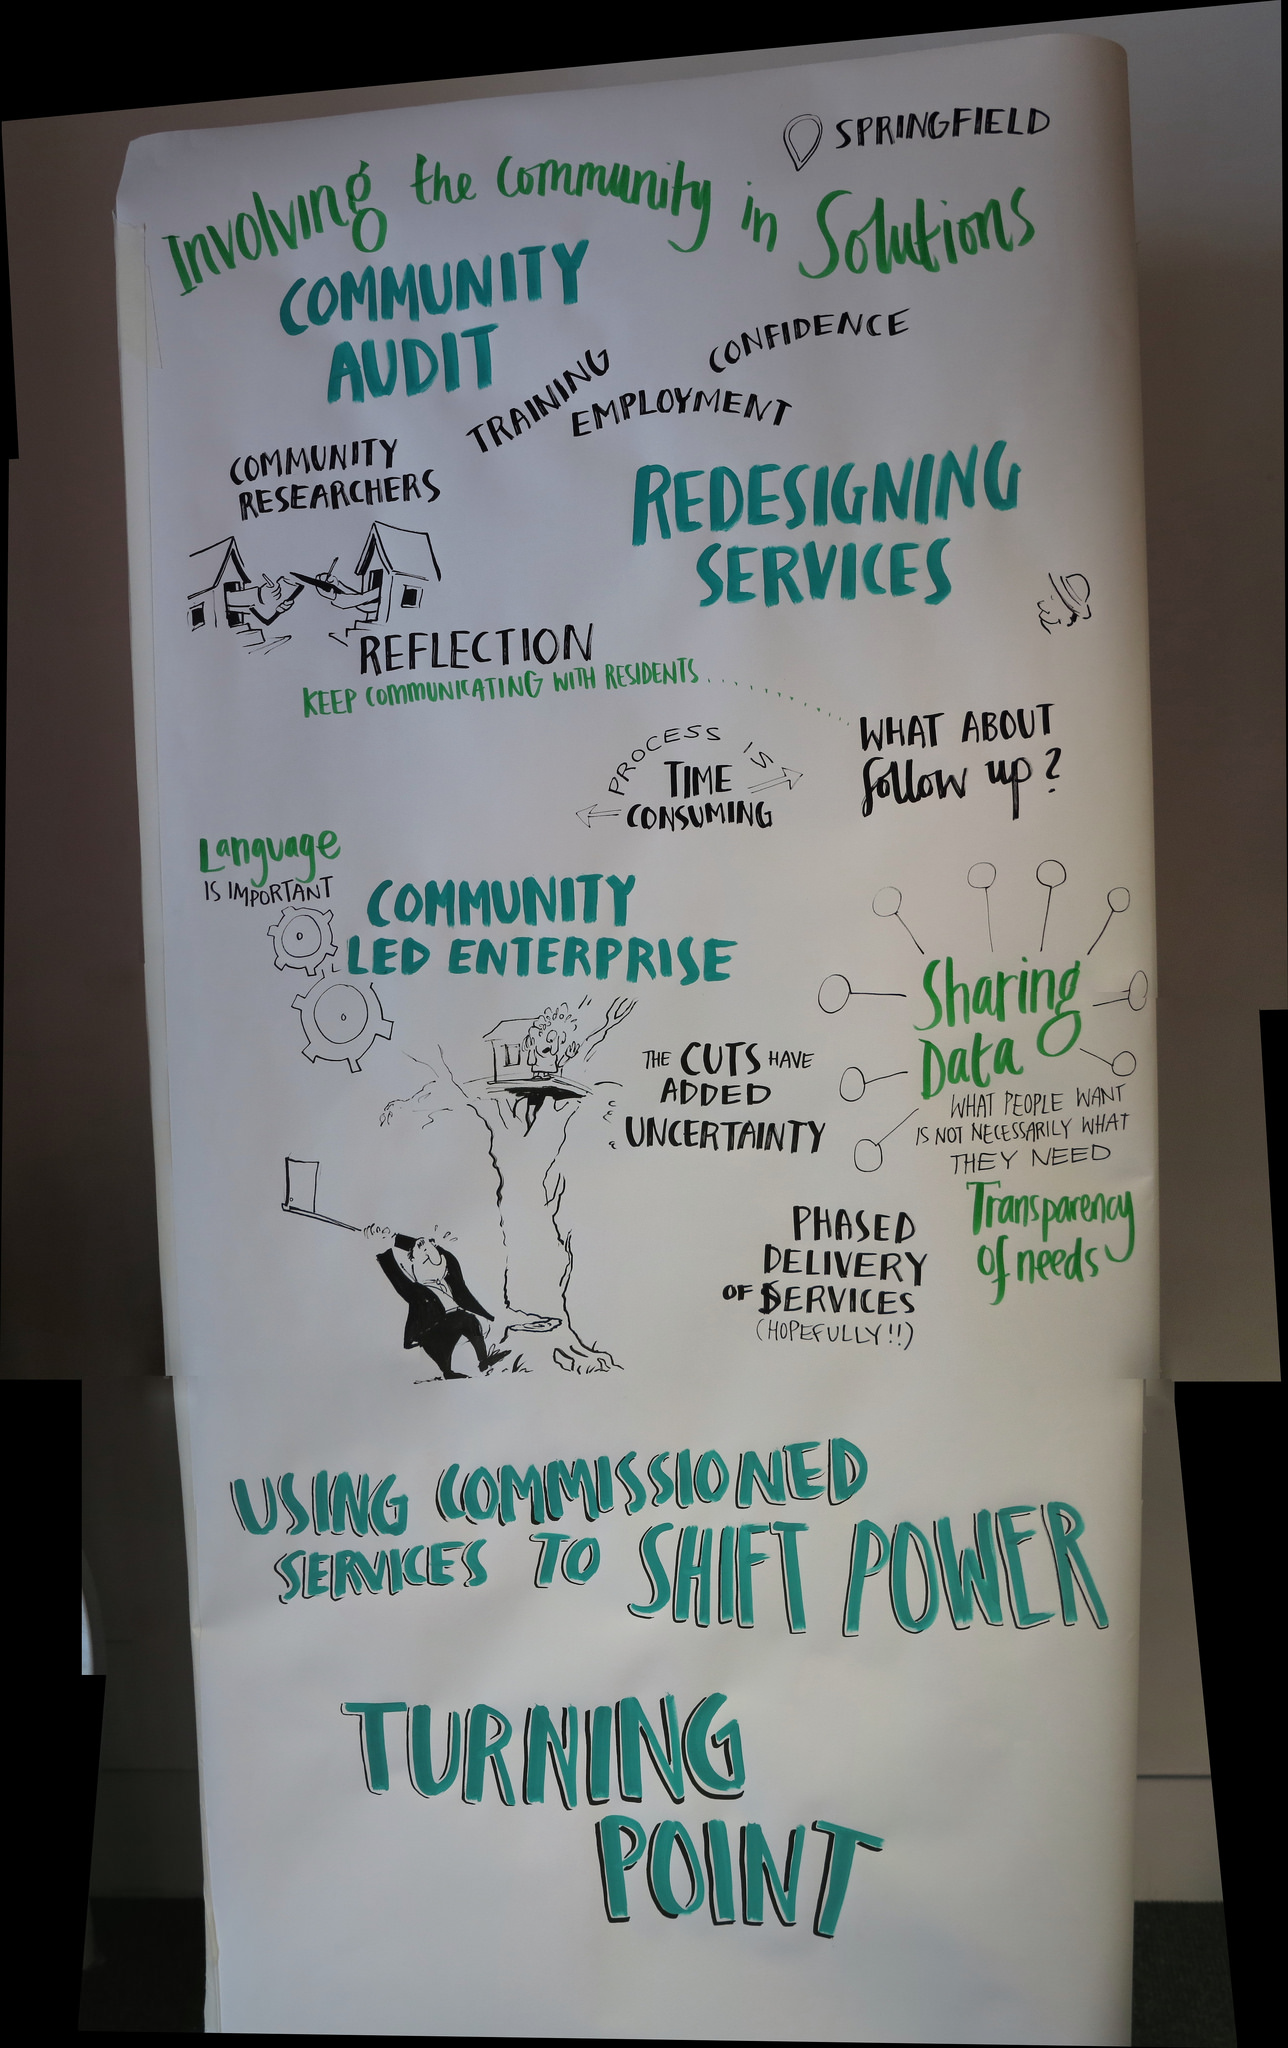 Turning Point - using commissioned services to shift power